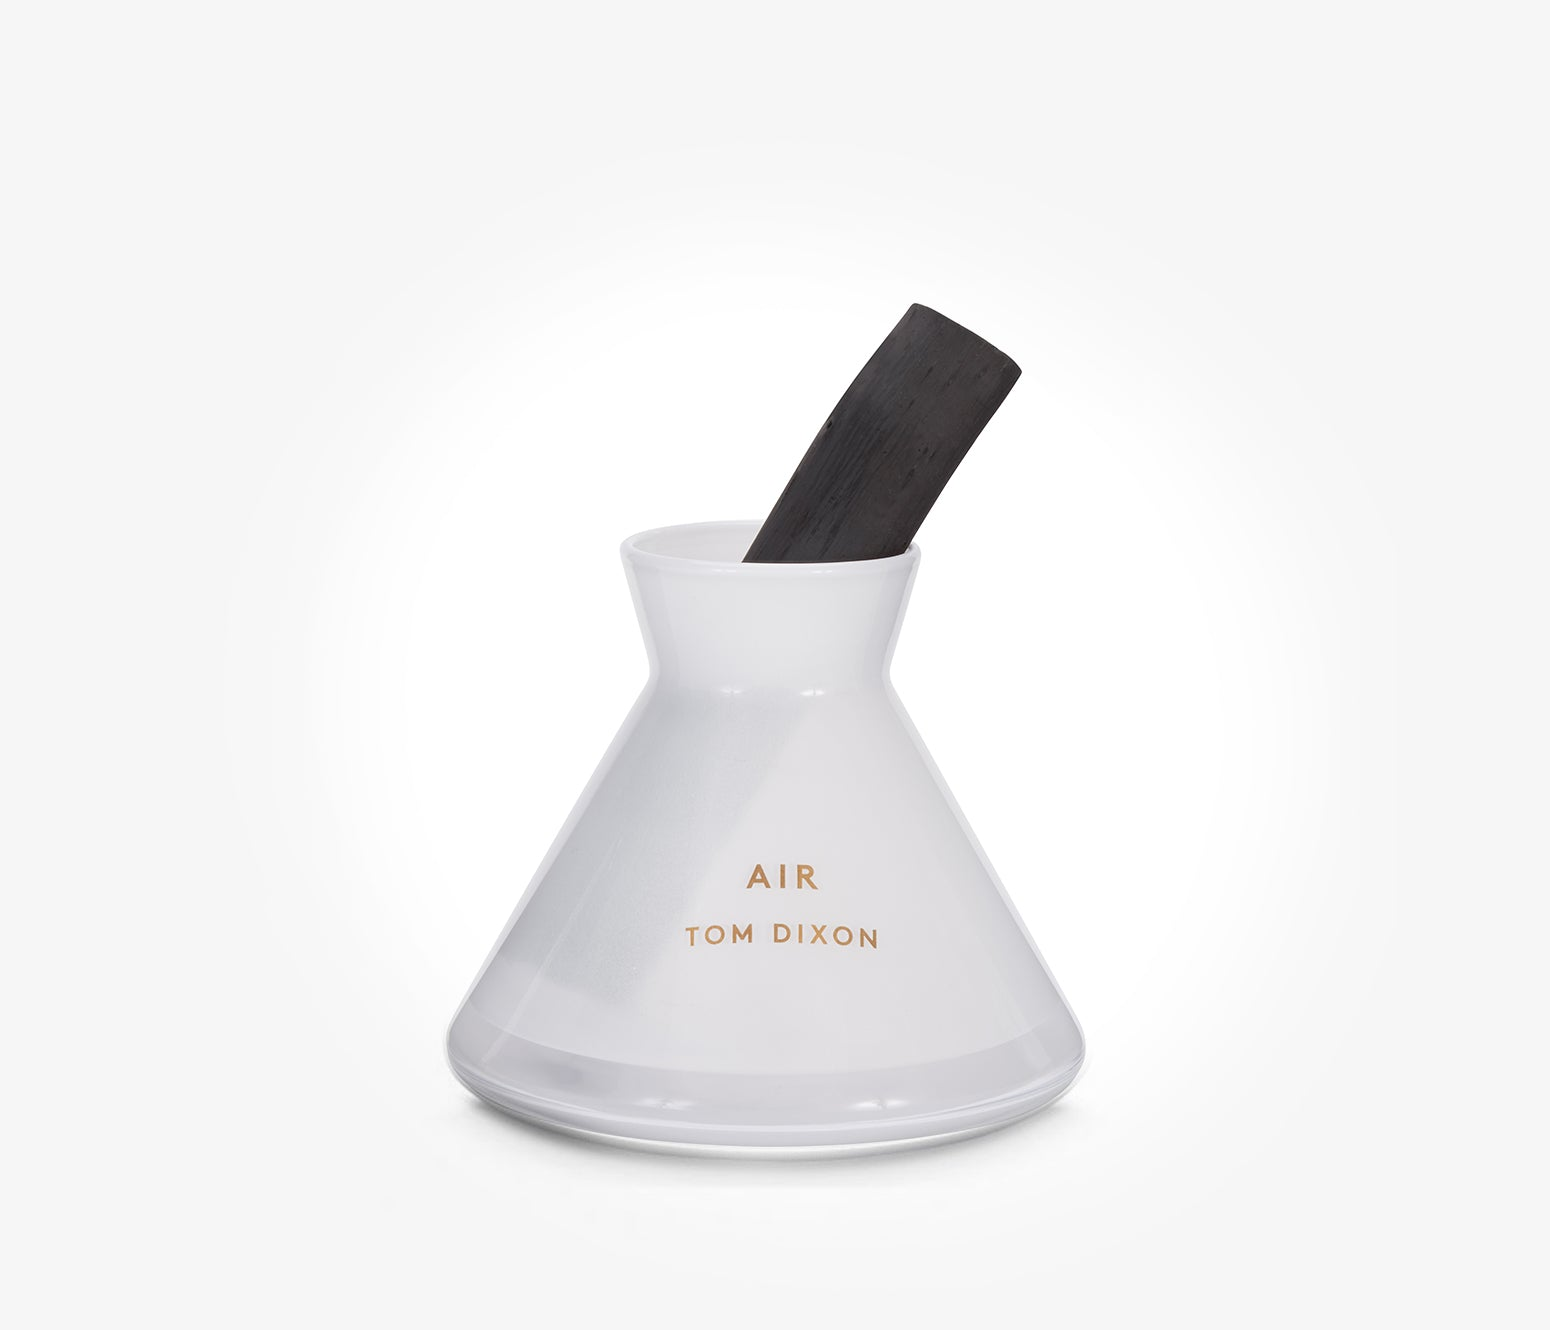 Tom Dixon - Air Diffuser - 200ml - CKB001 - product image - Diffuser - Les Senteurs